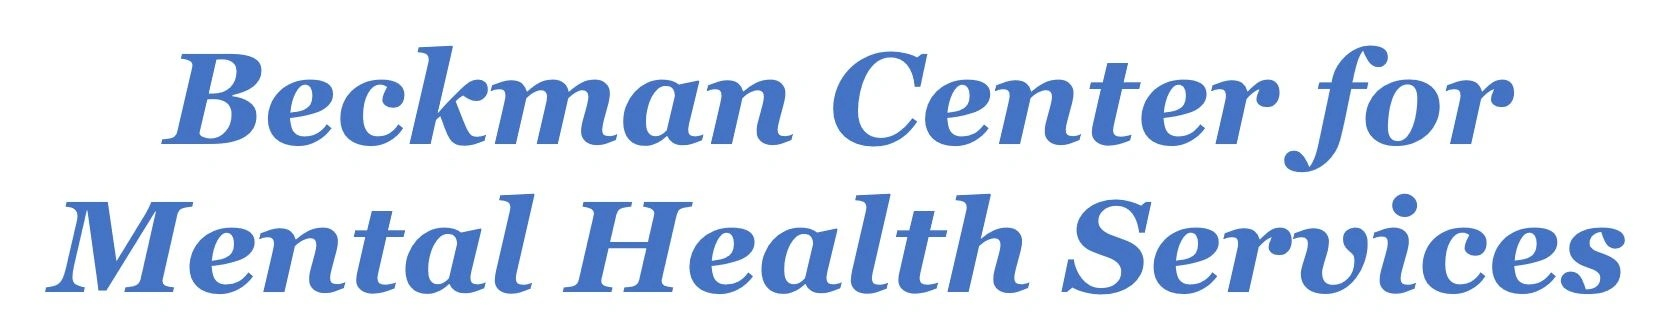 Beckman Center for Mental Health Services